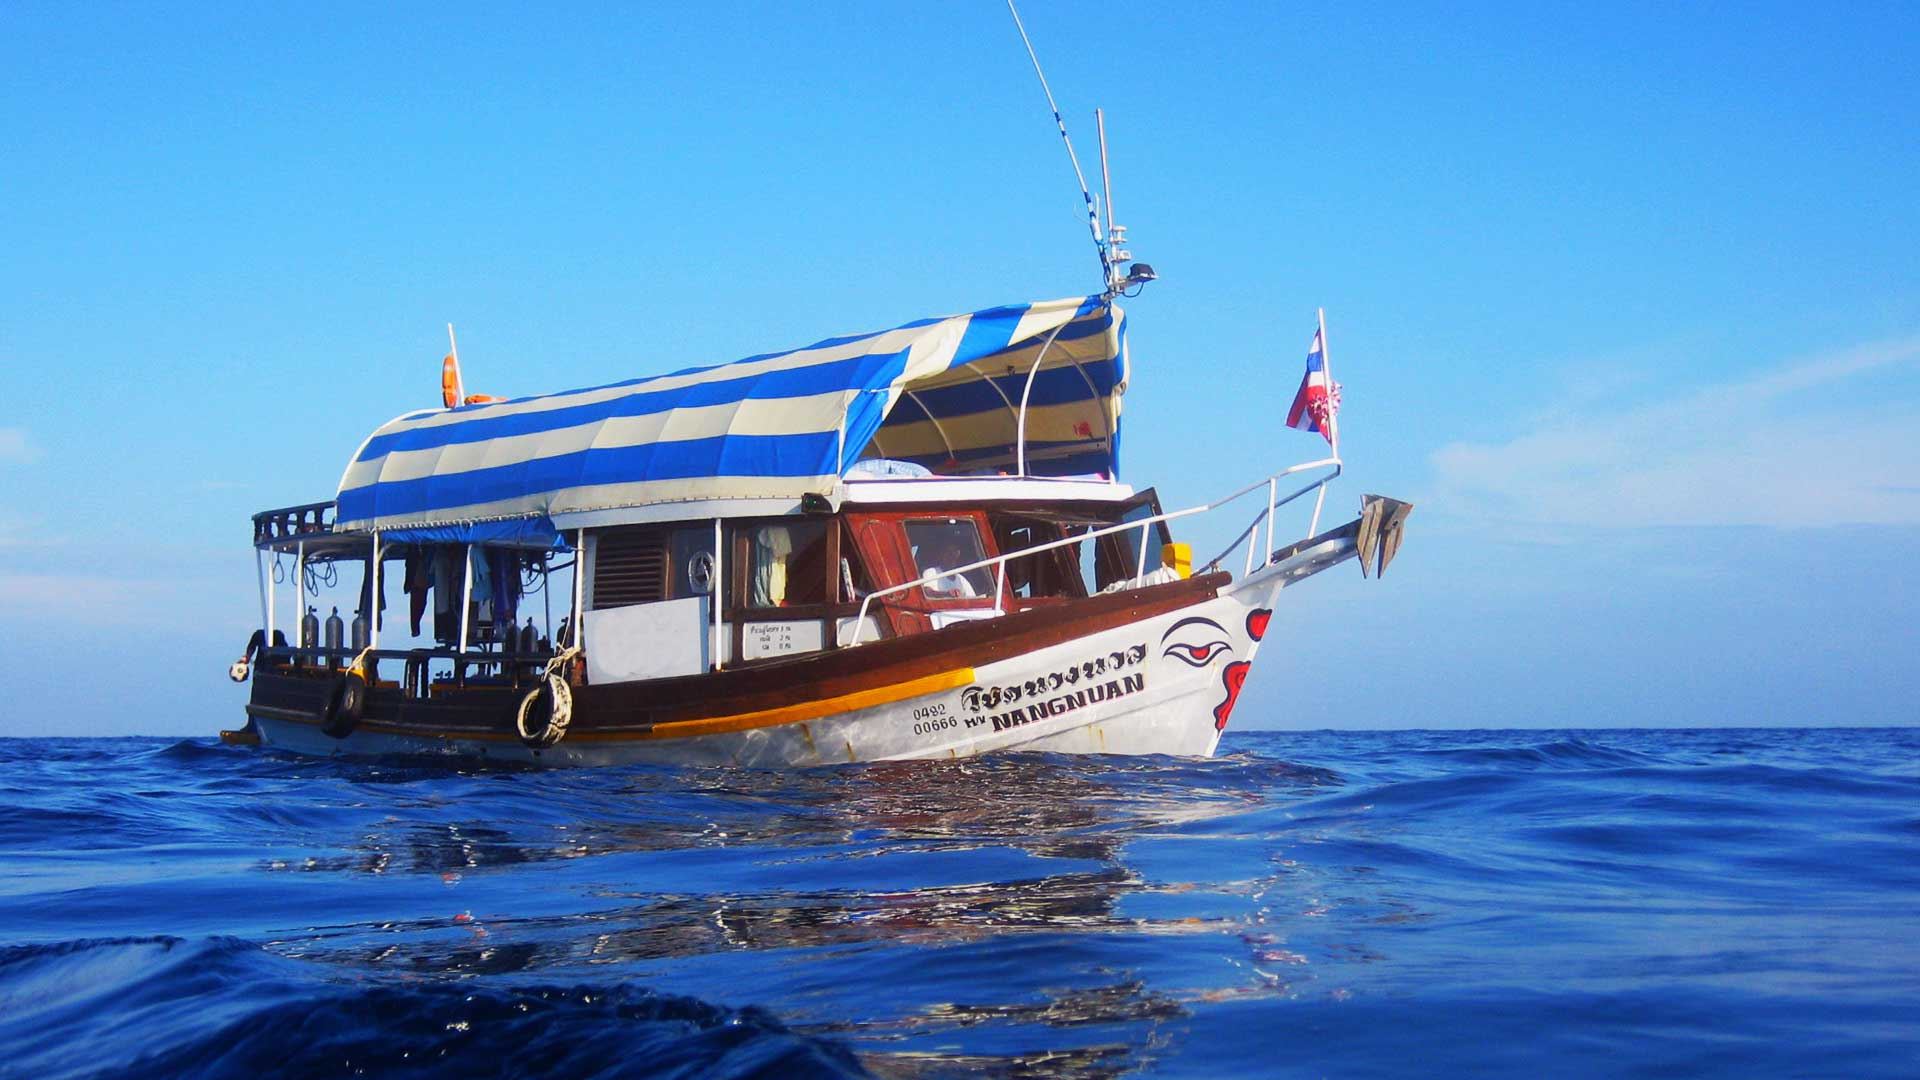 MV Nangnuan diving datrip boat to Boonsung wreck